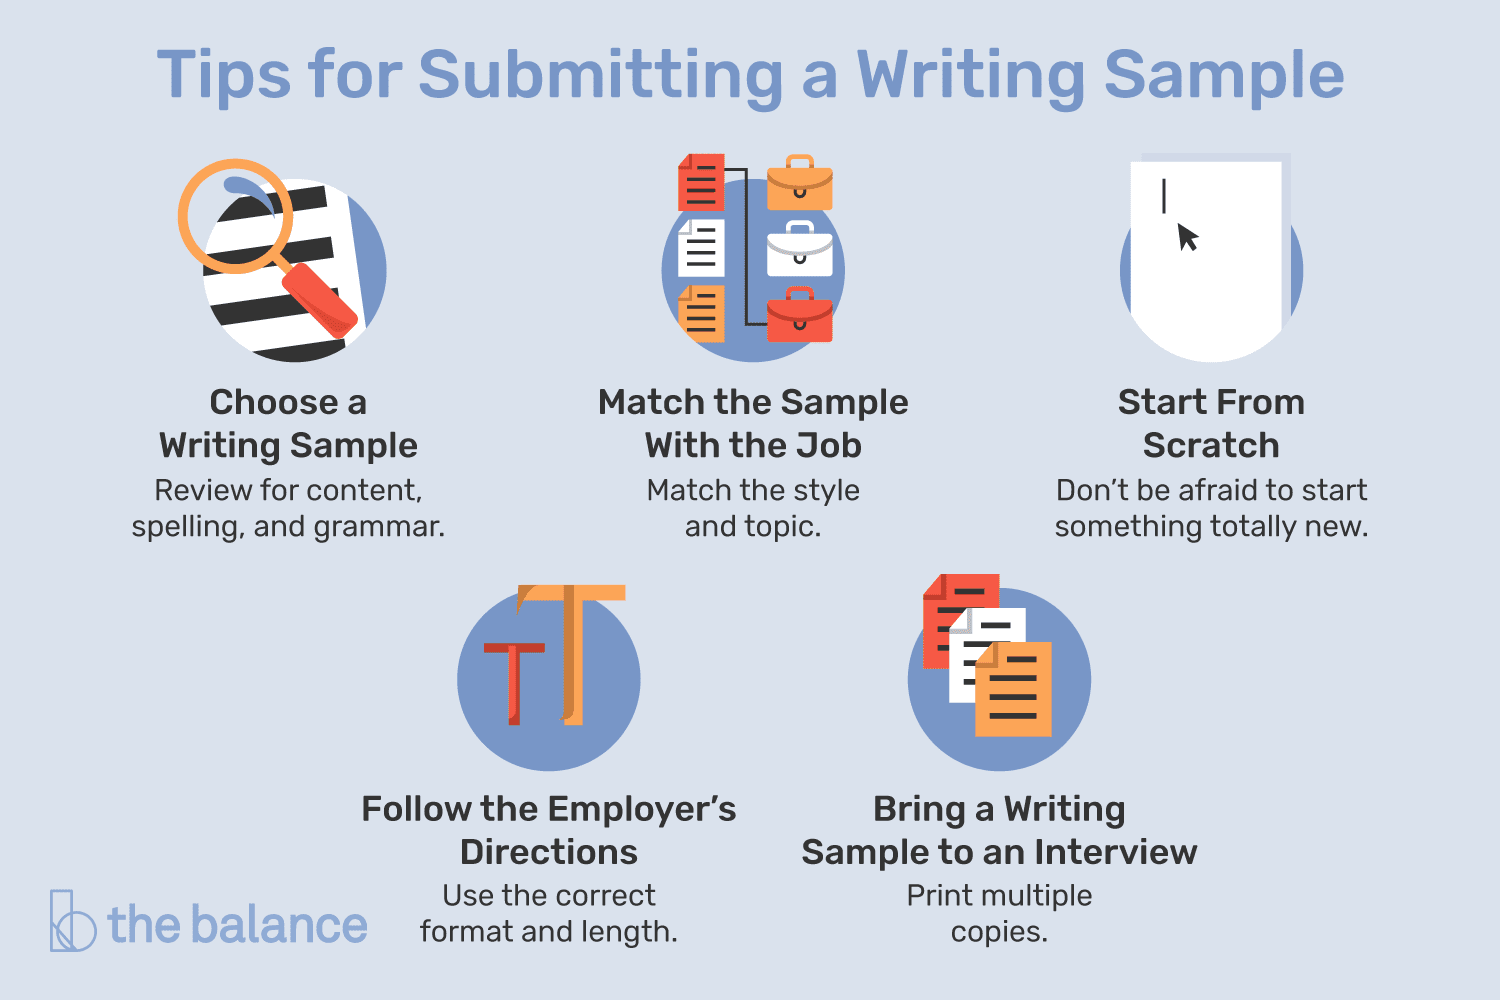 What to Know About Writing Samples When Job Hunting